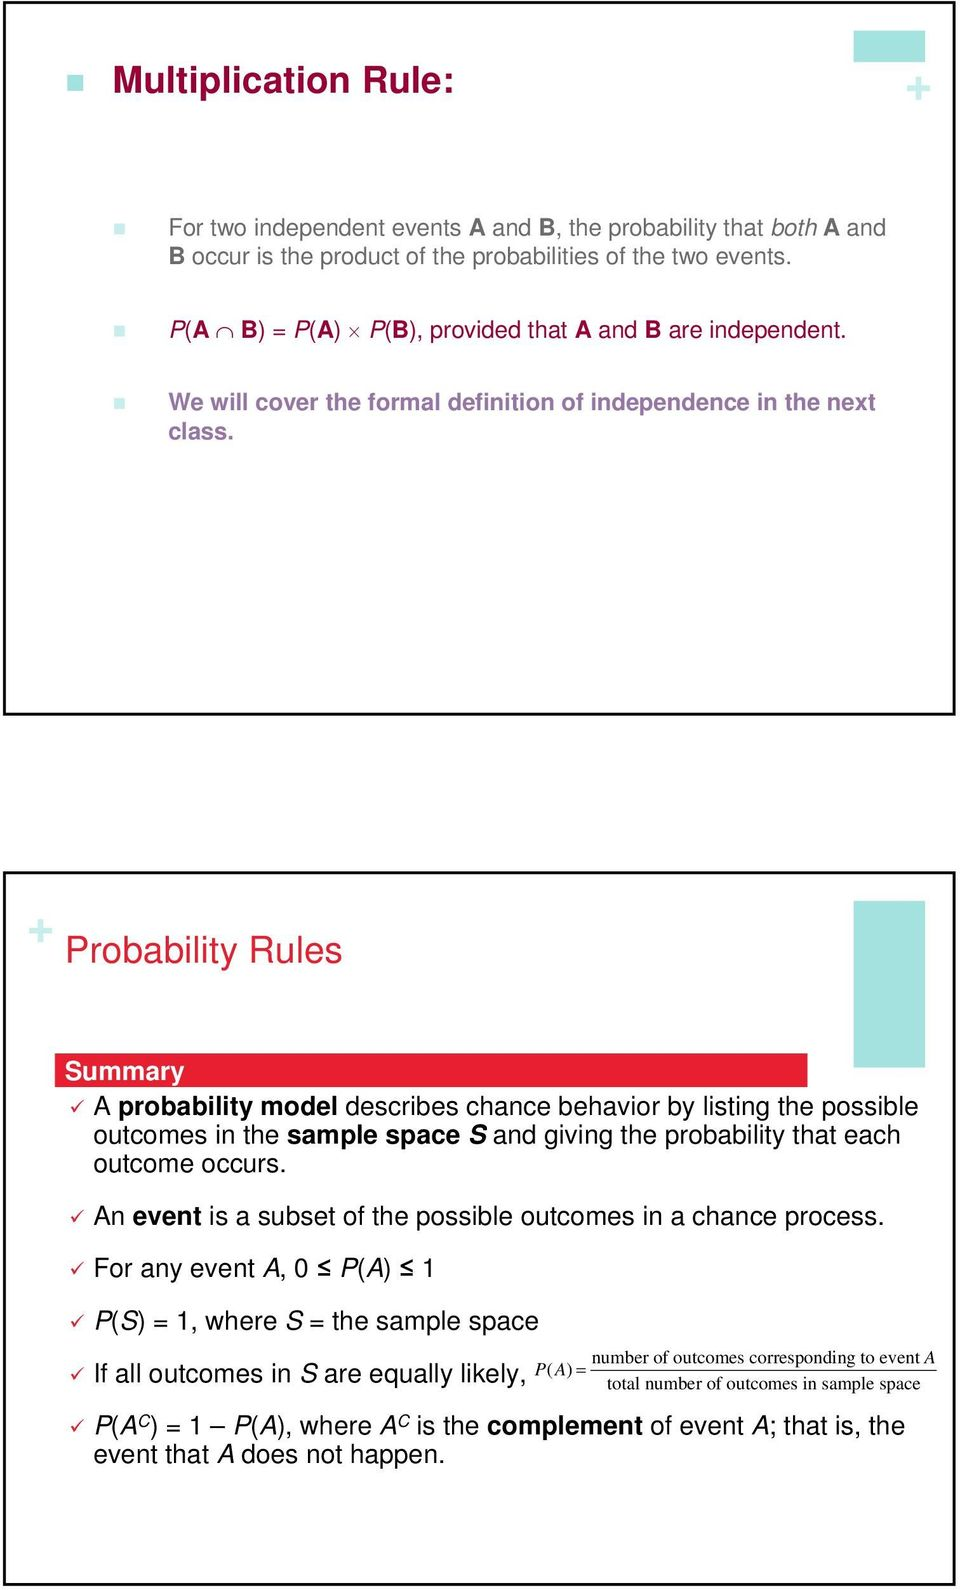 Summary A probability model describes chance behavior by listing the possible outcomes in the sample space S and giving the probability that each outcome occurs.